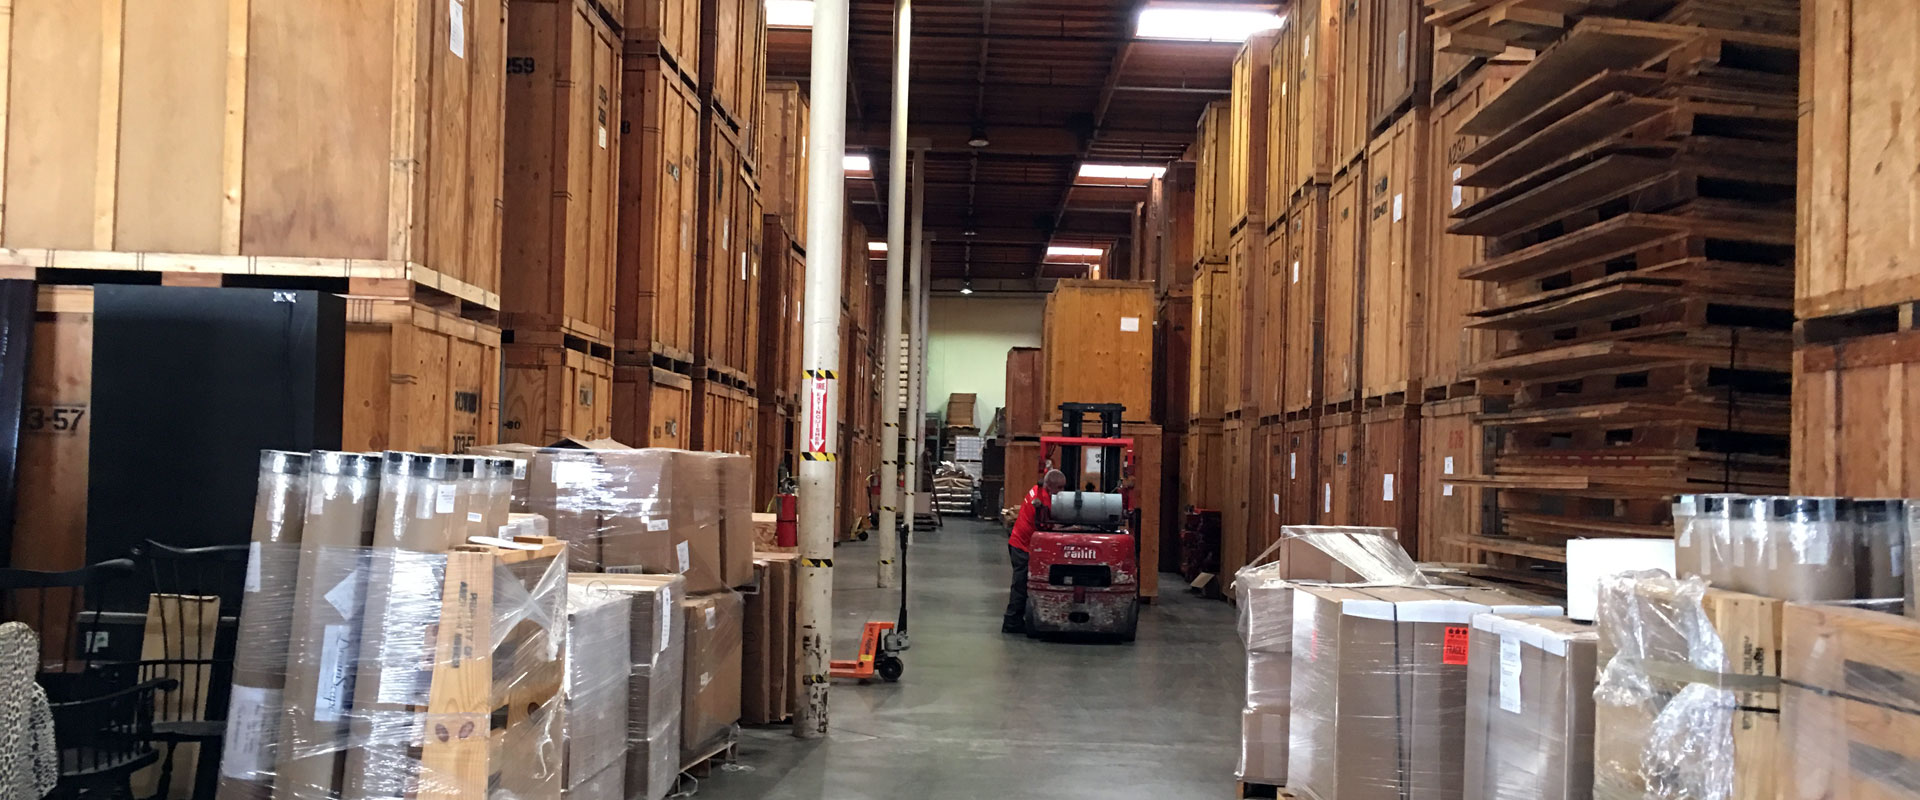 Hire Warehousing Companies in India For Better Business